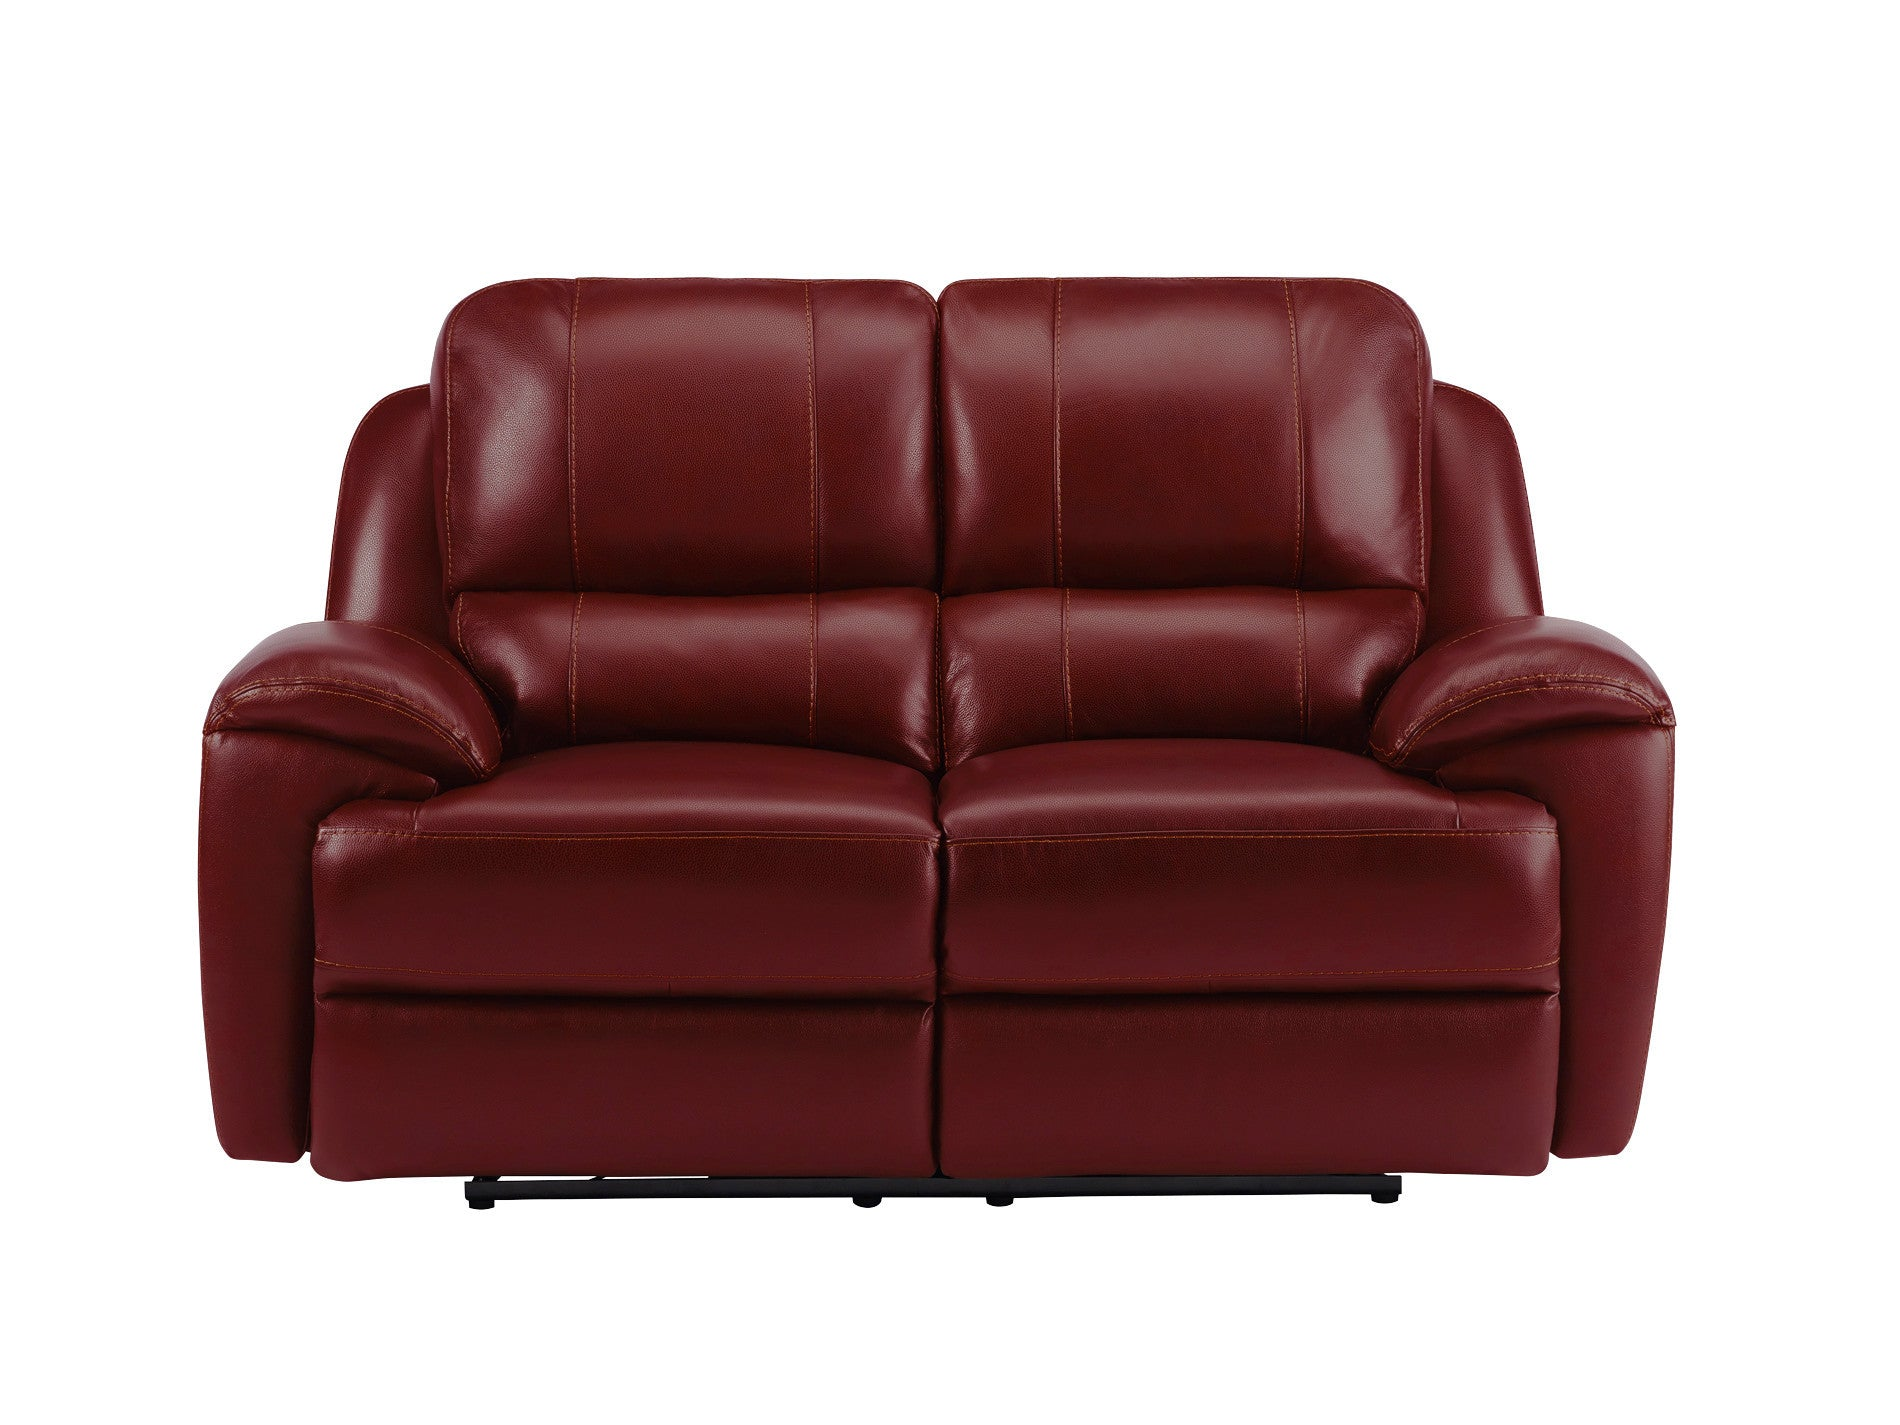 Finley Medium Sofa with 2 Electric Recliners Burgundy Leather